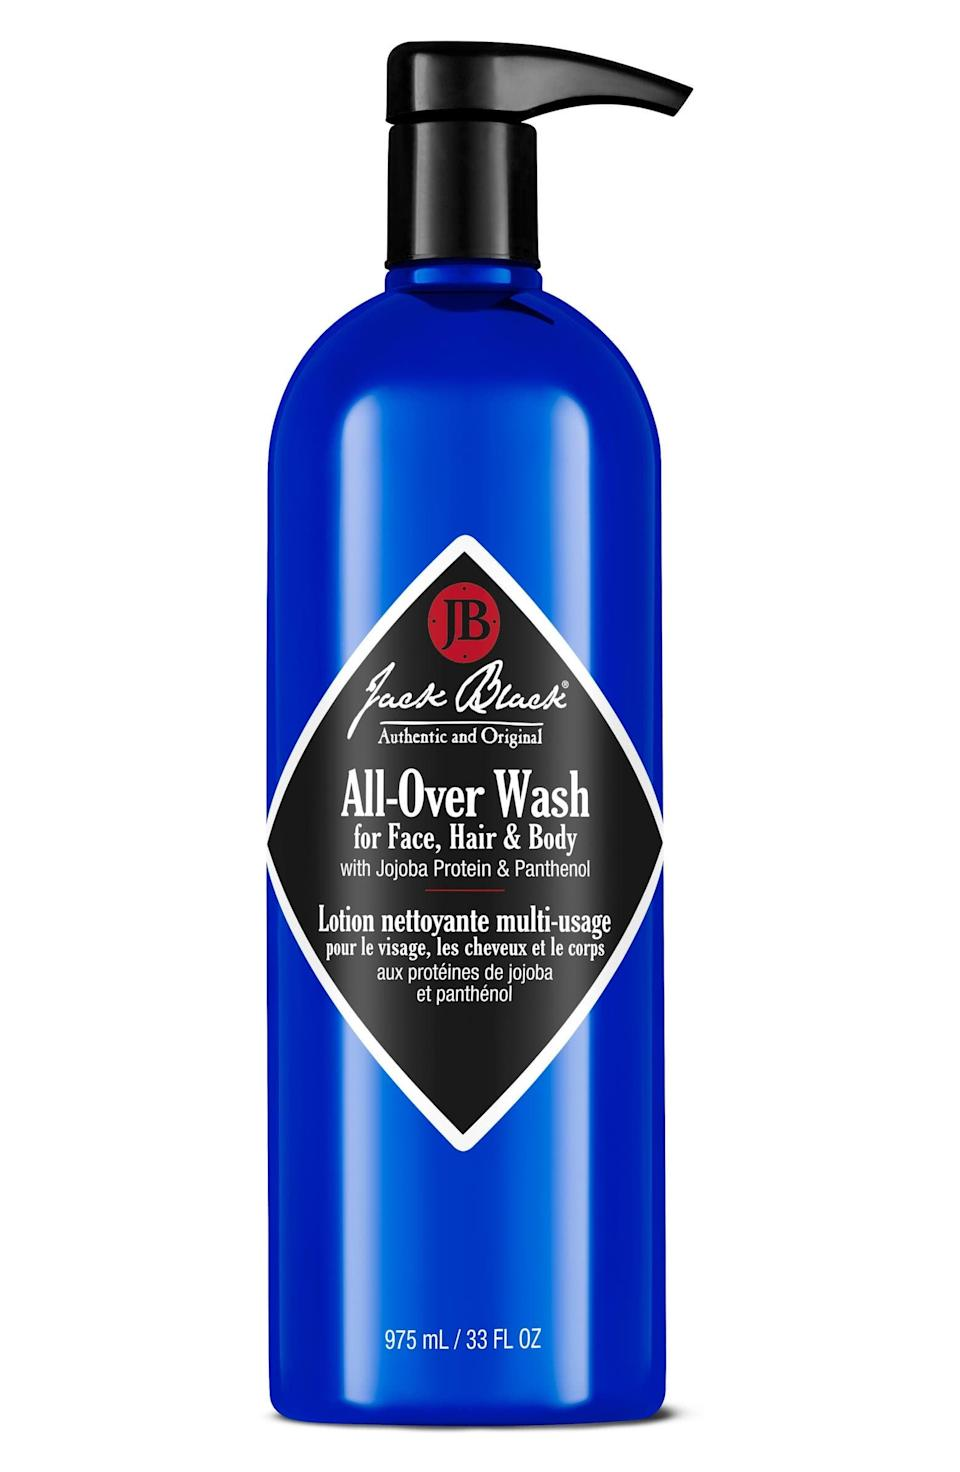 <p>We love this <span>Jack Black All-Over Wash</span> ($21) because it takes care of all of your body's cleansing needs by combining everything - shampoo, body wash, and cleanser - into one nourishing, multitasking product that leaves both the skin and hair feeling baby soft.</p>